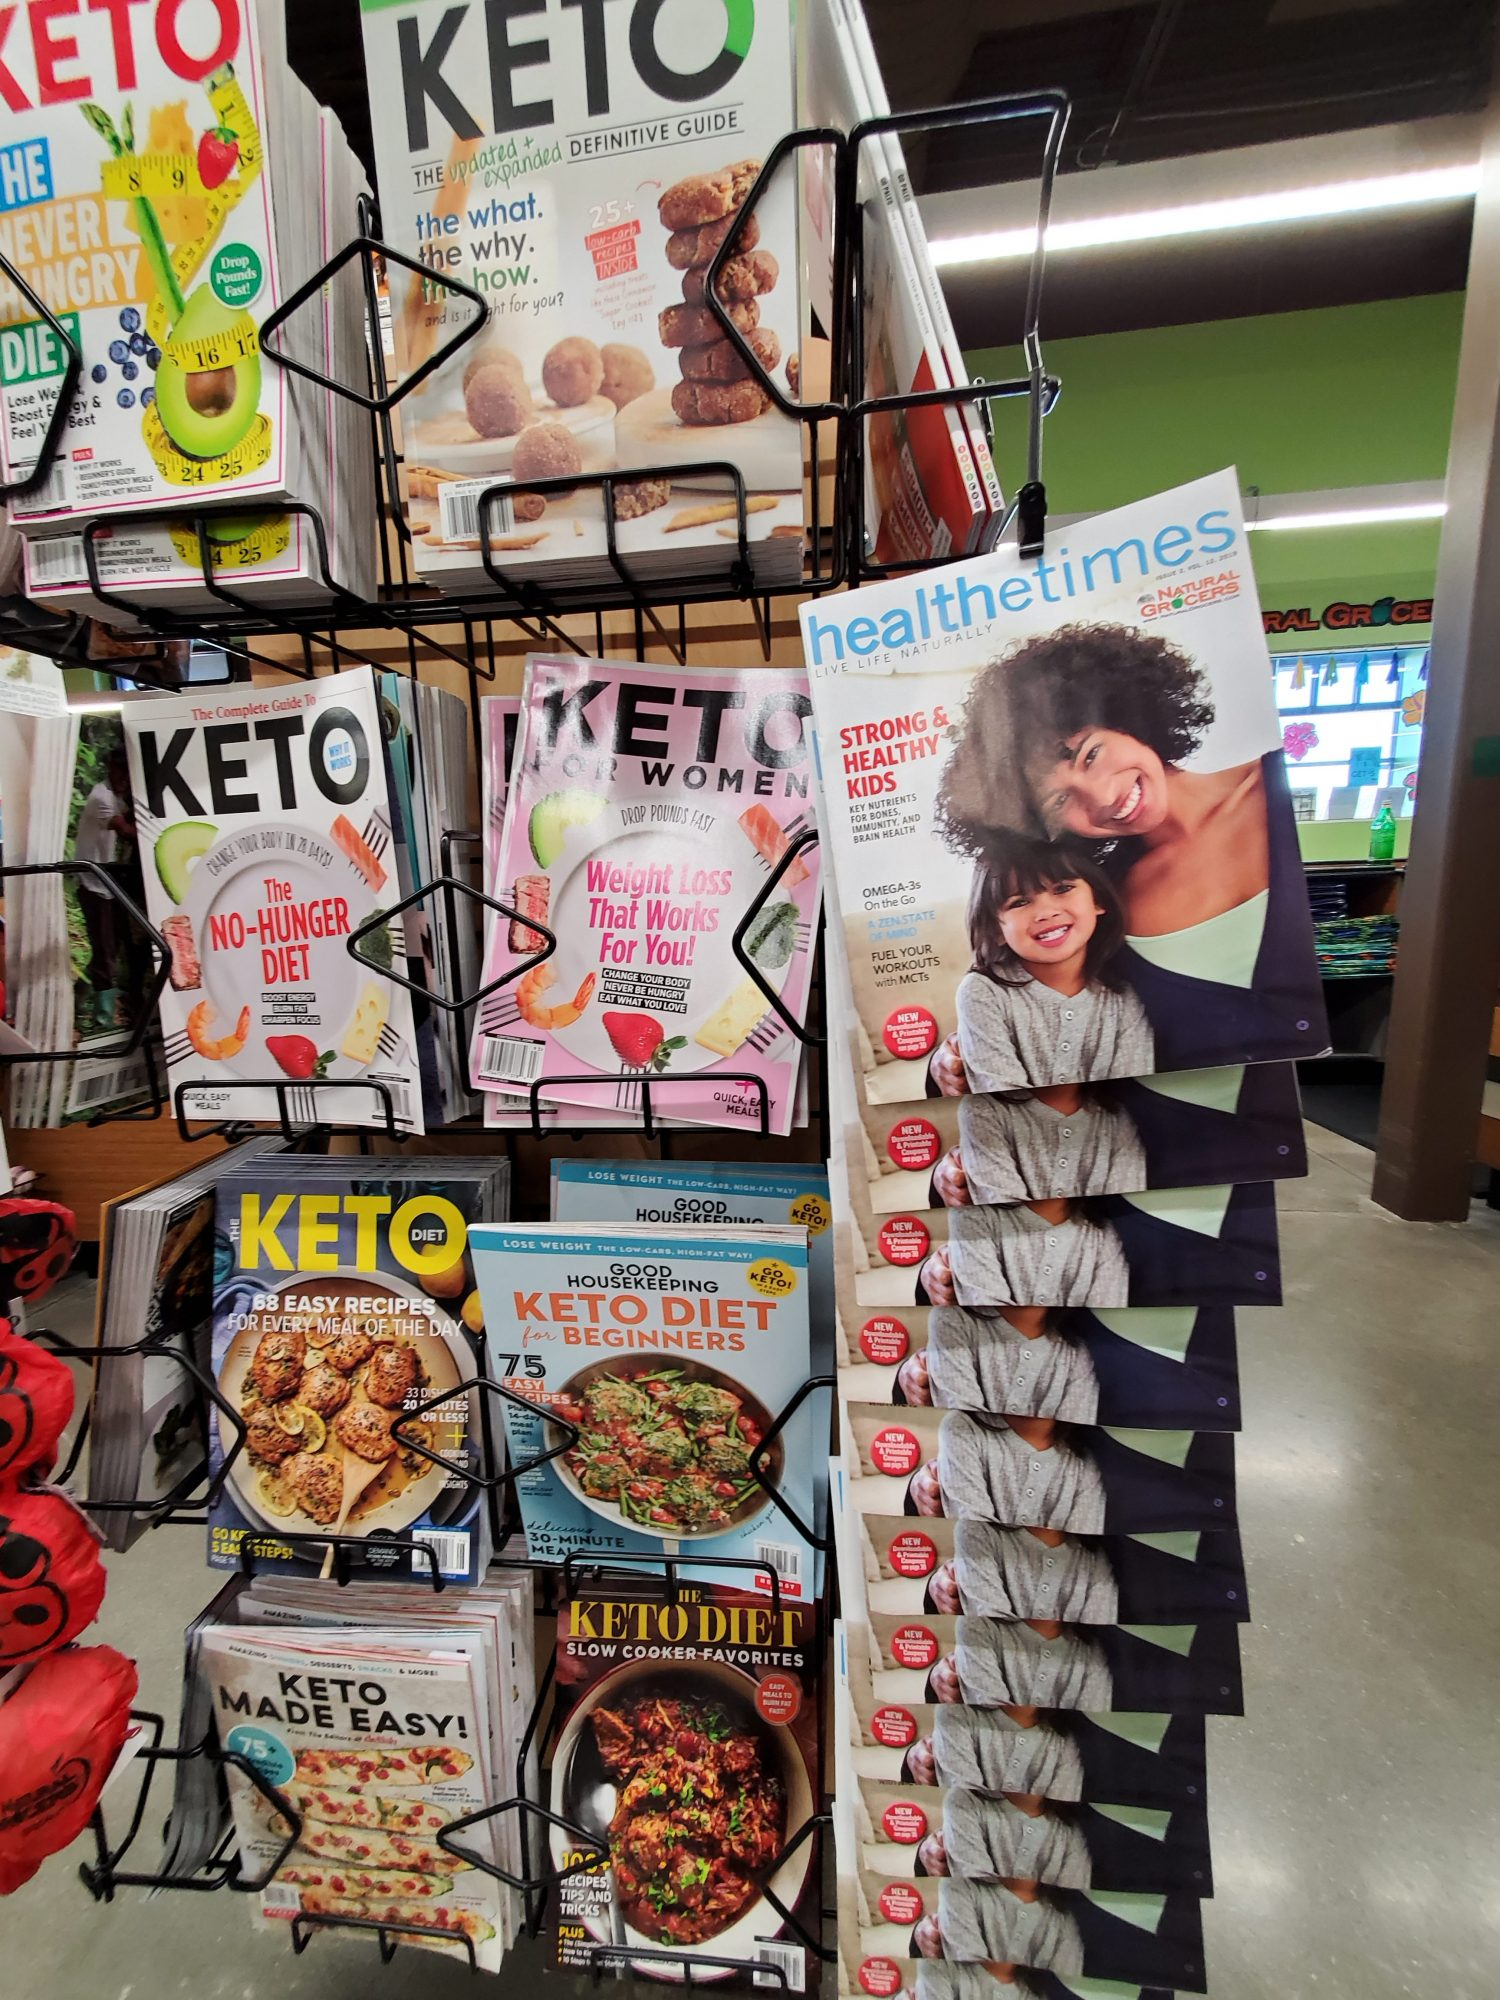 The Keto Diet is Really Popular, But Why?